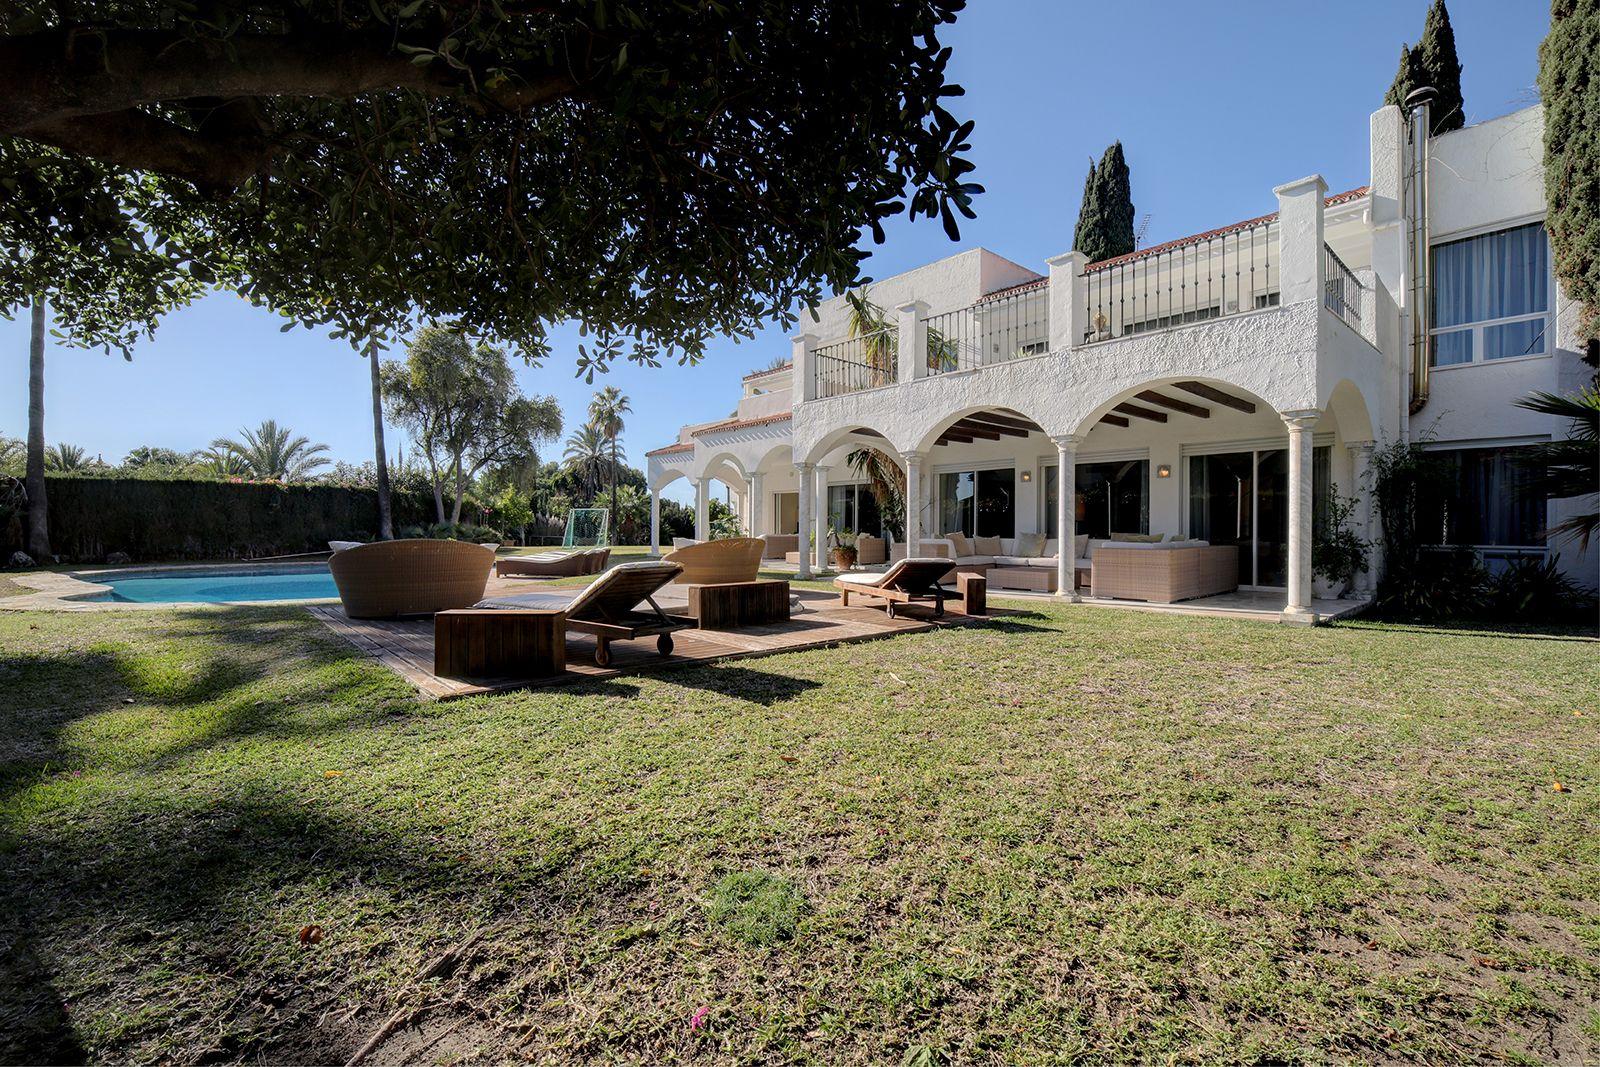 Luxury mansion situated in Atalaya de Rio Verde